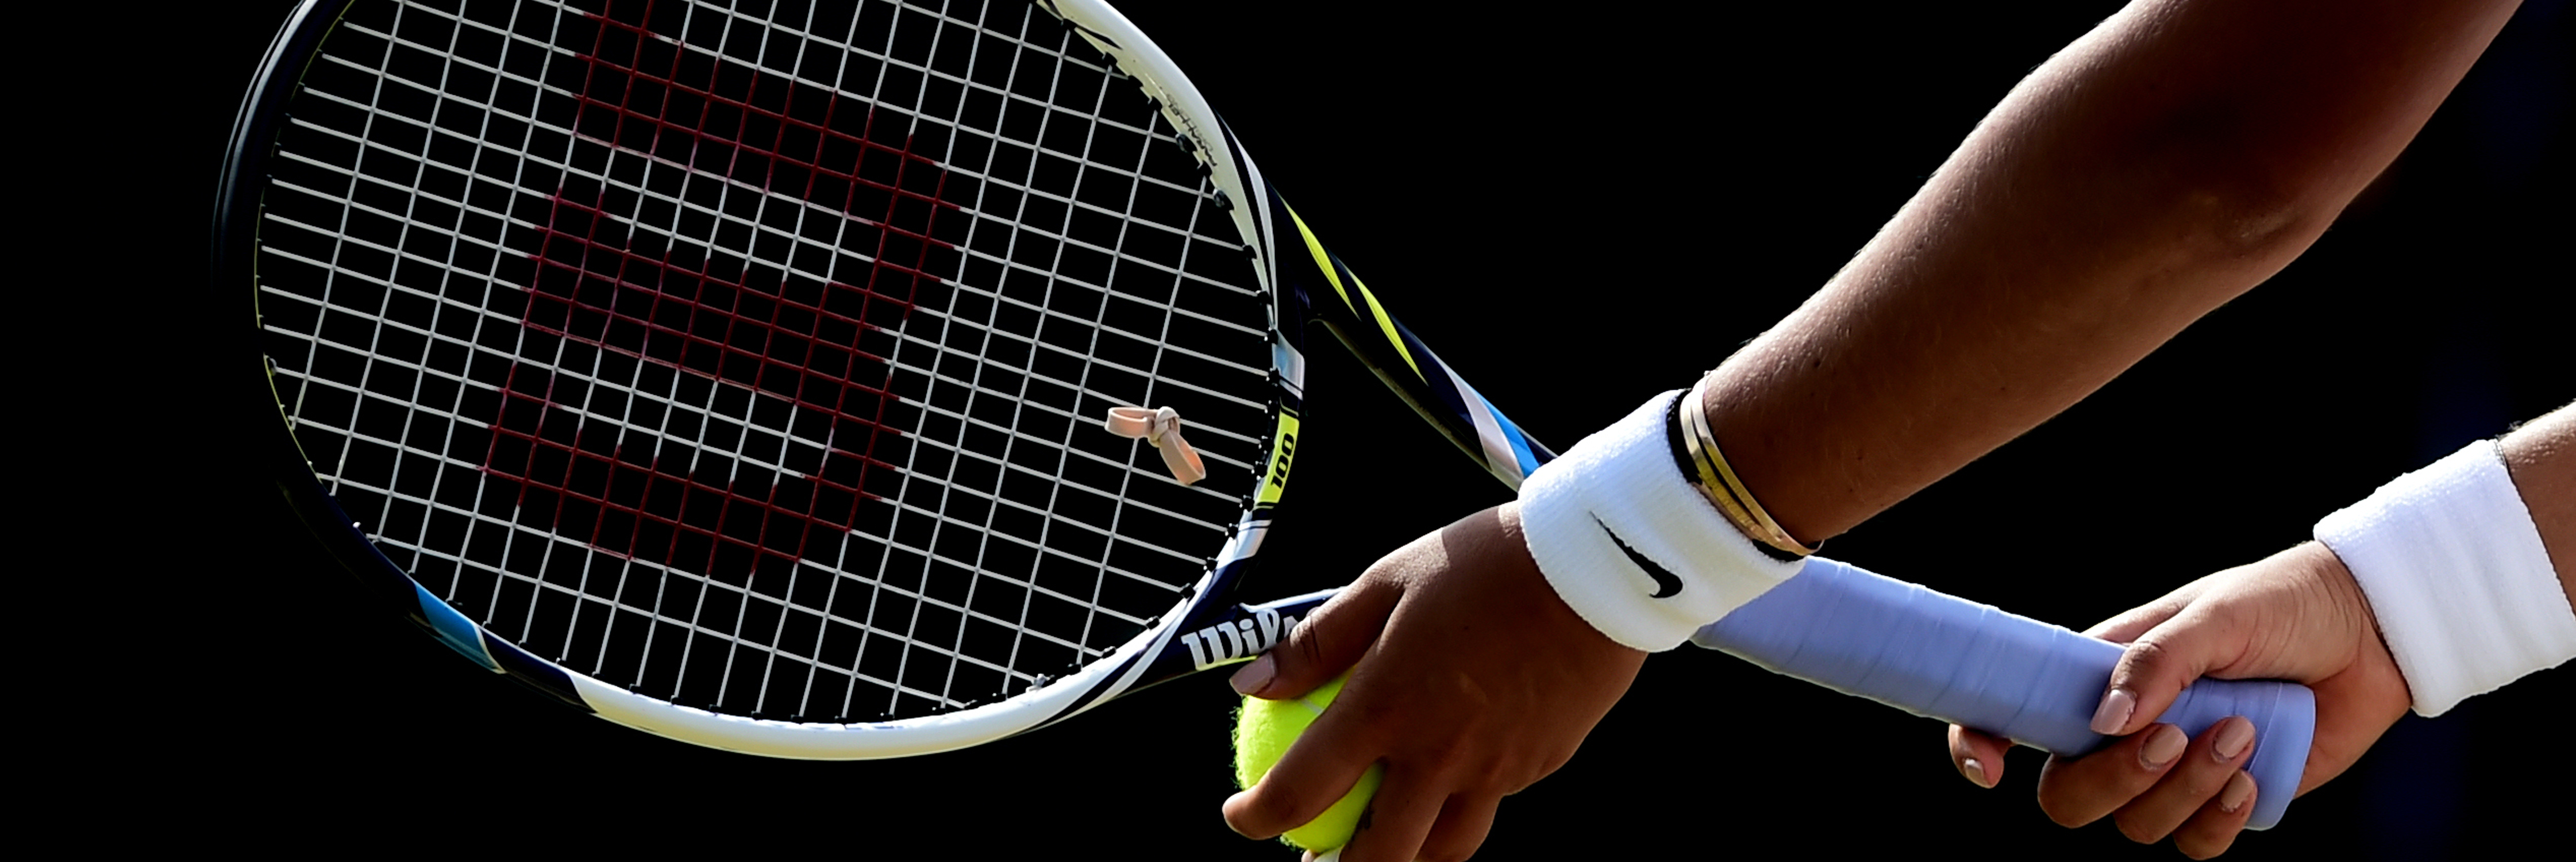 nextbet tennis betting tips